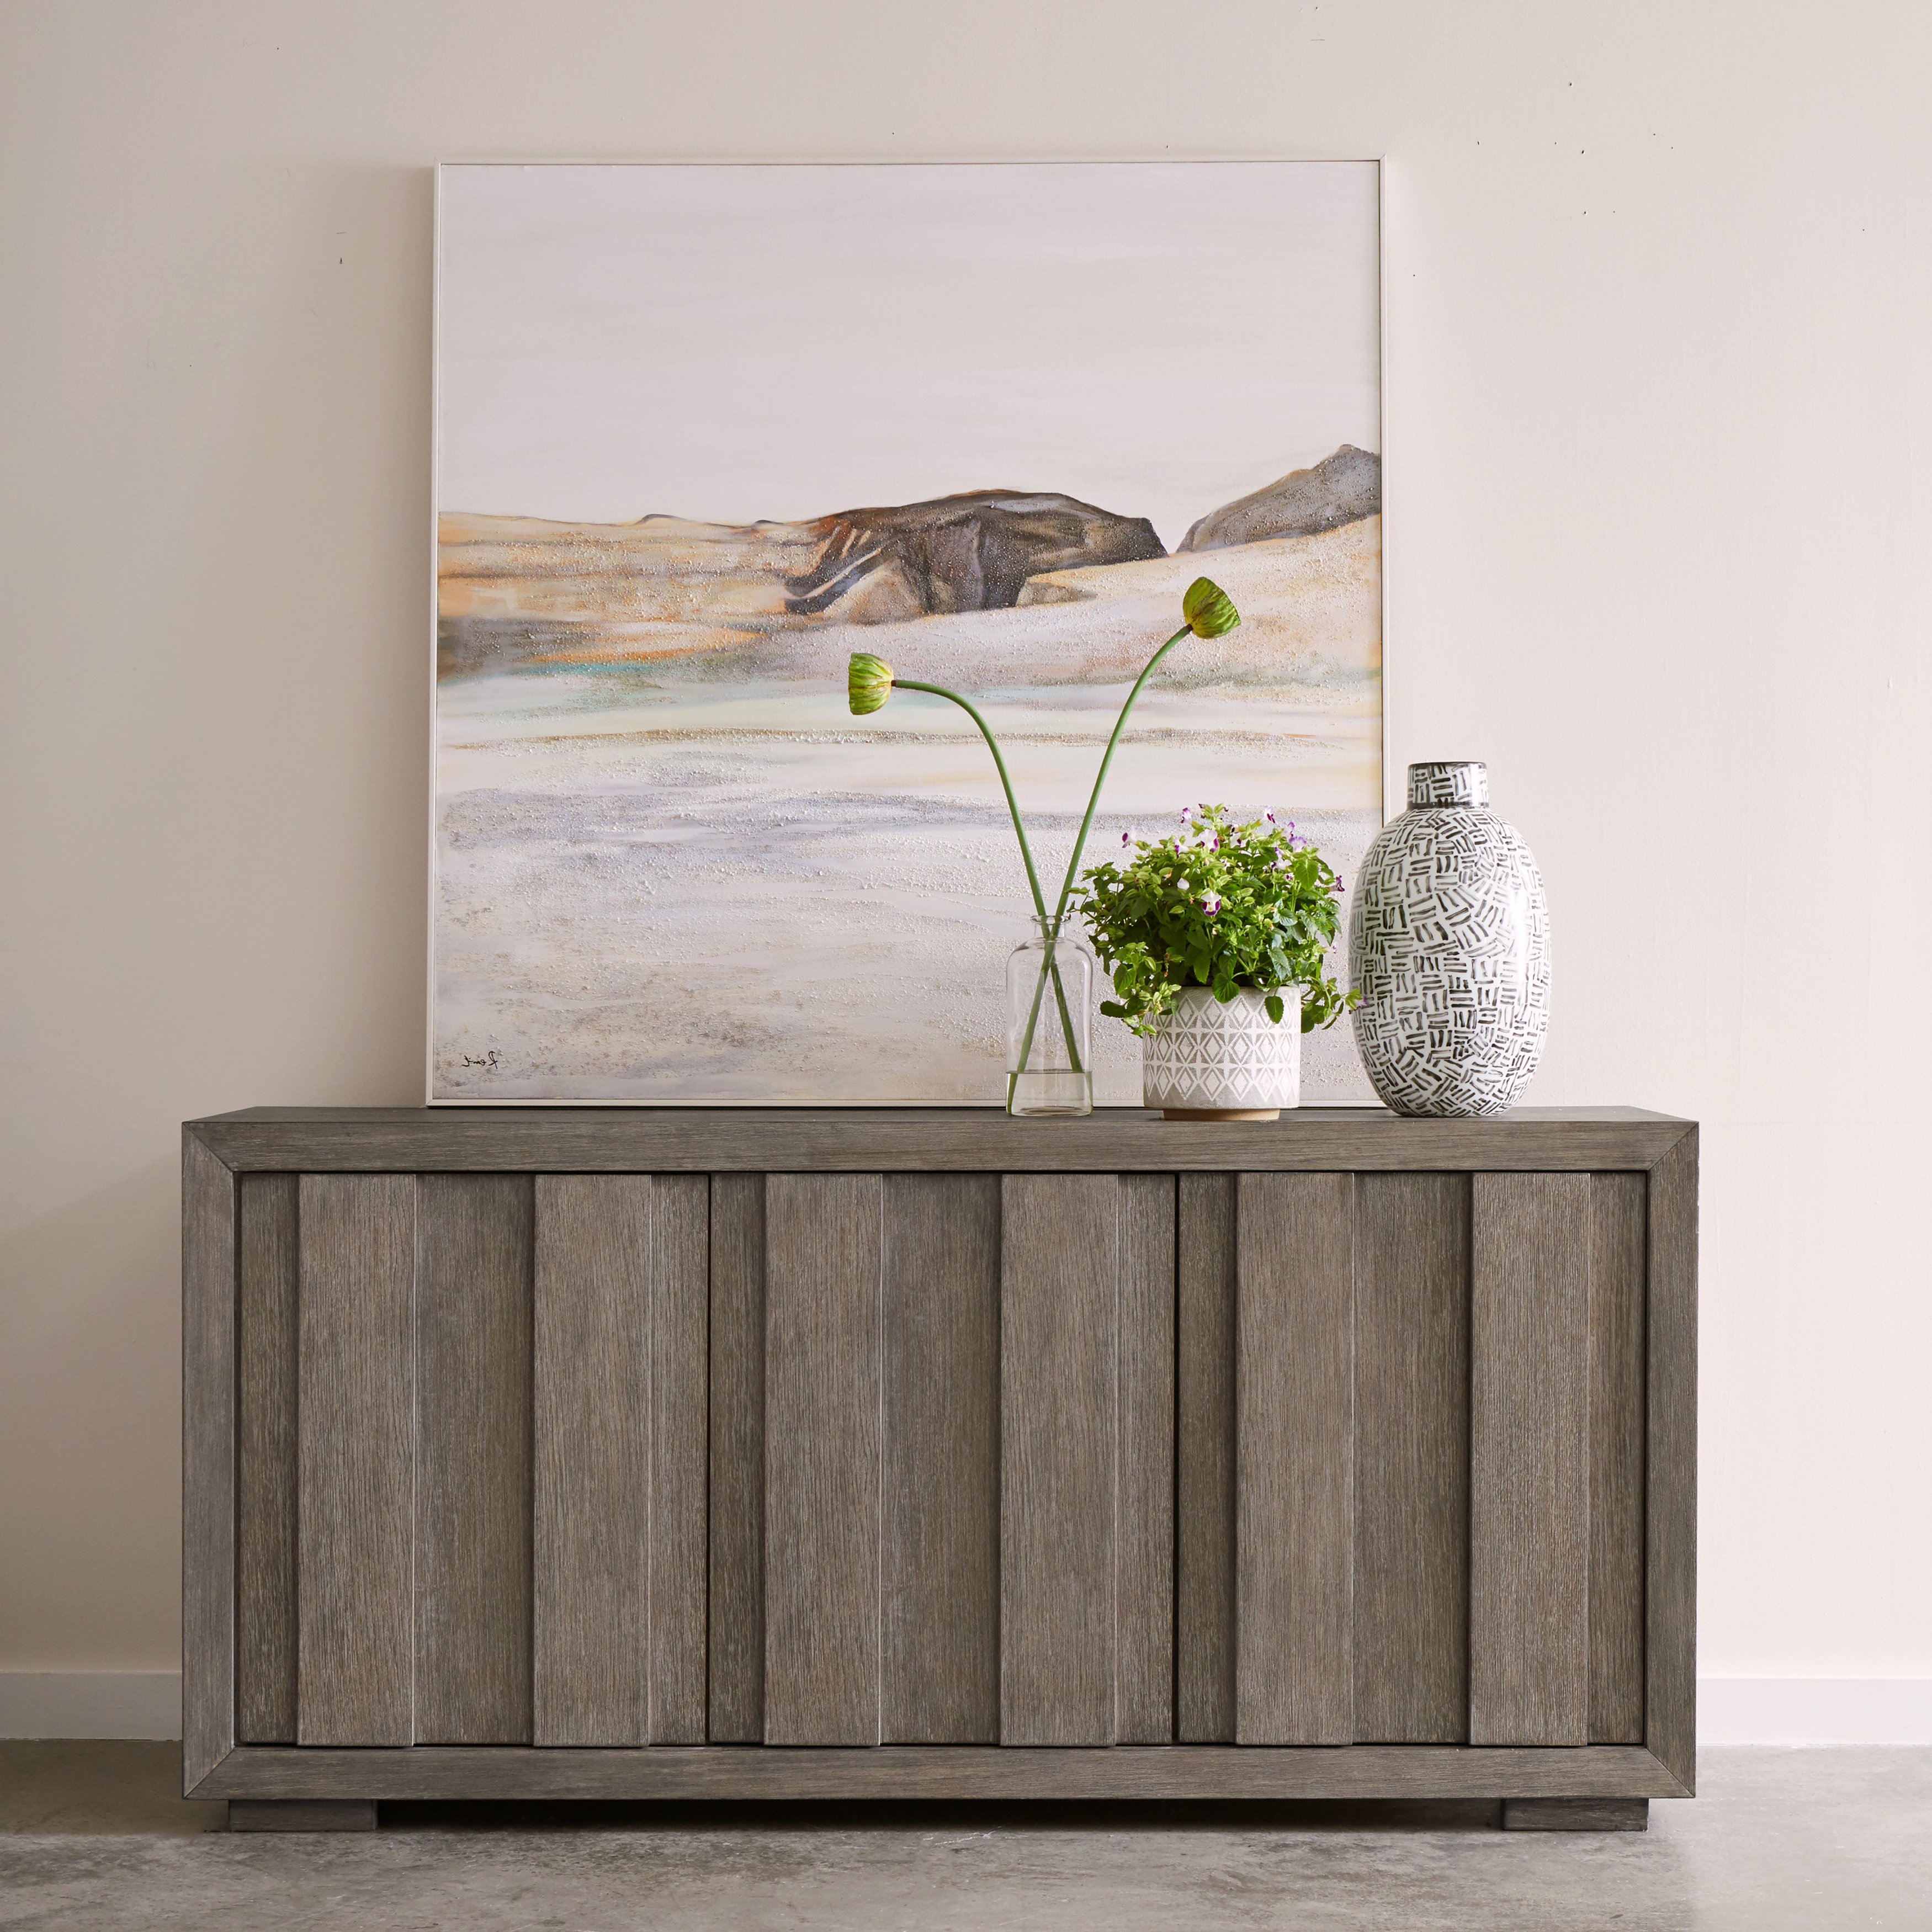 Most Popular Chicoree Charlena Sideboards Within Brisco Rustic Plank Front 3 Door Storage Credenza (View 20 of 20)